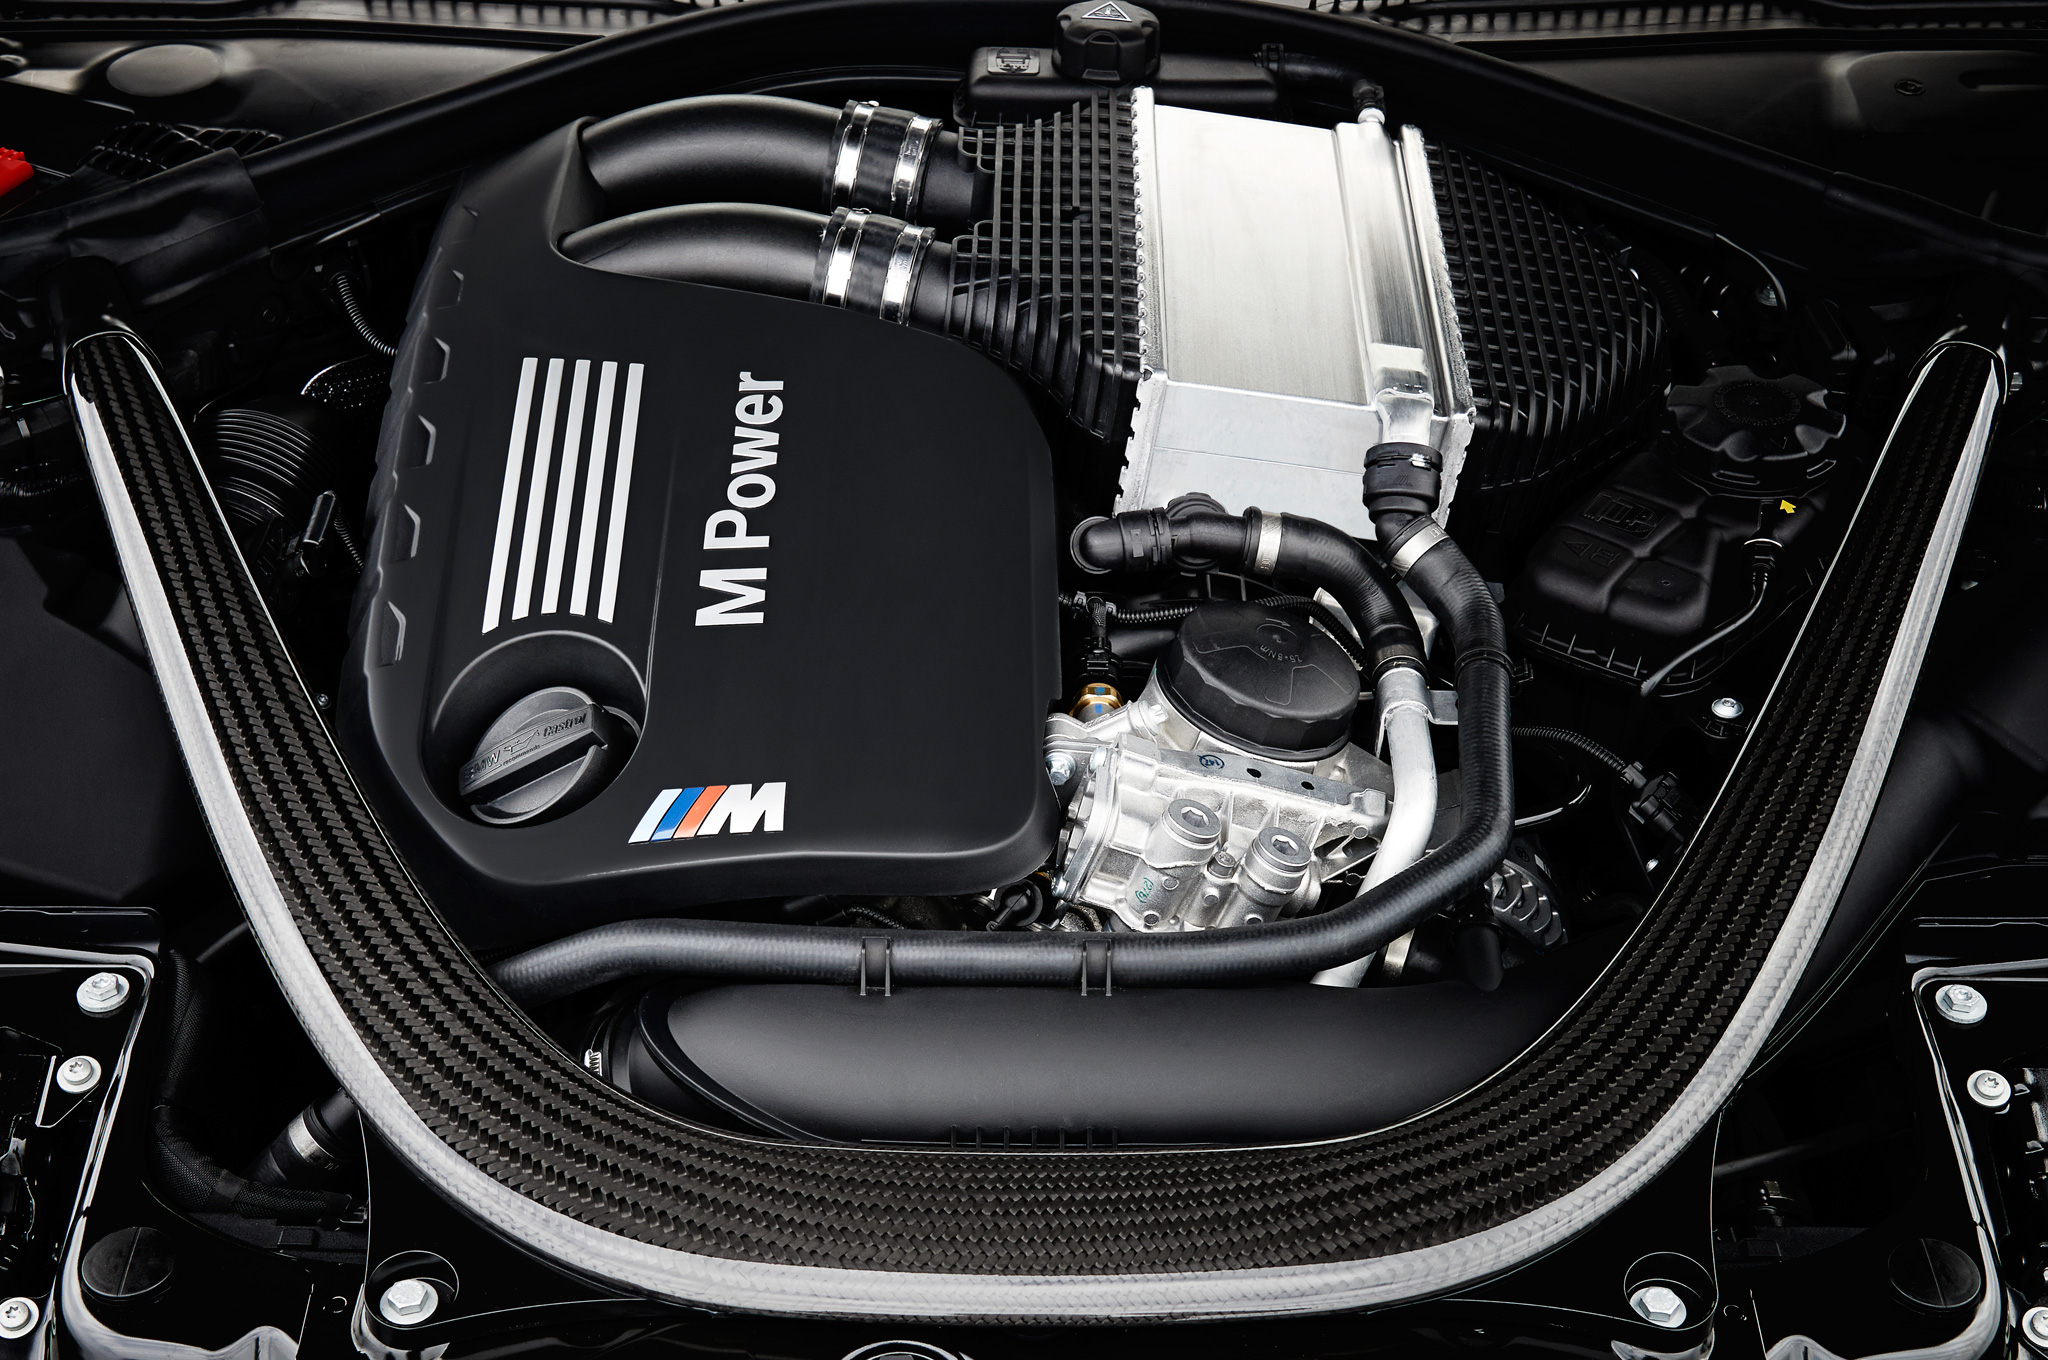 2015 Bmw M4 Convertible Engine View (View 9 of 50)